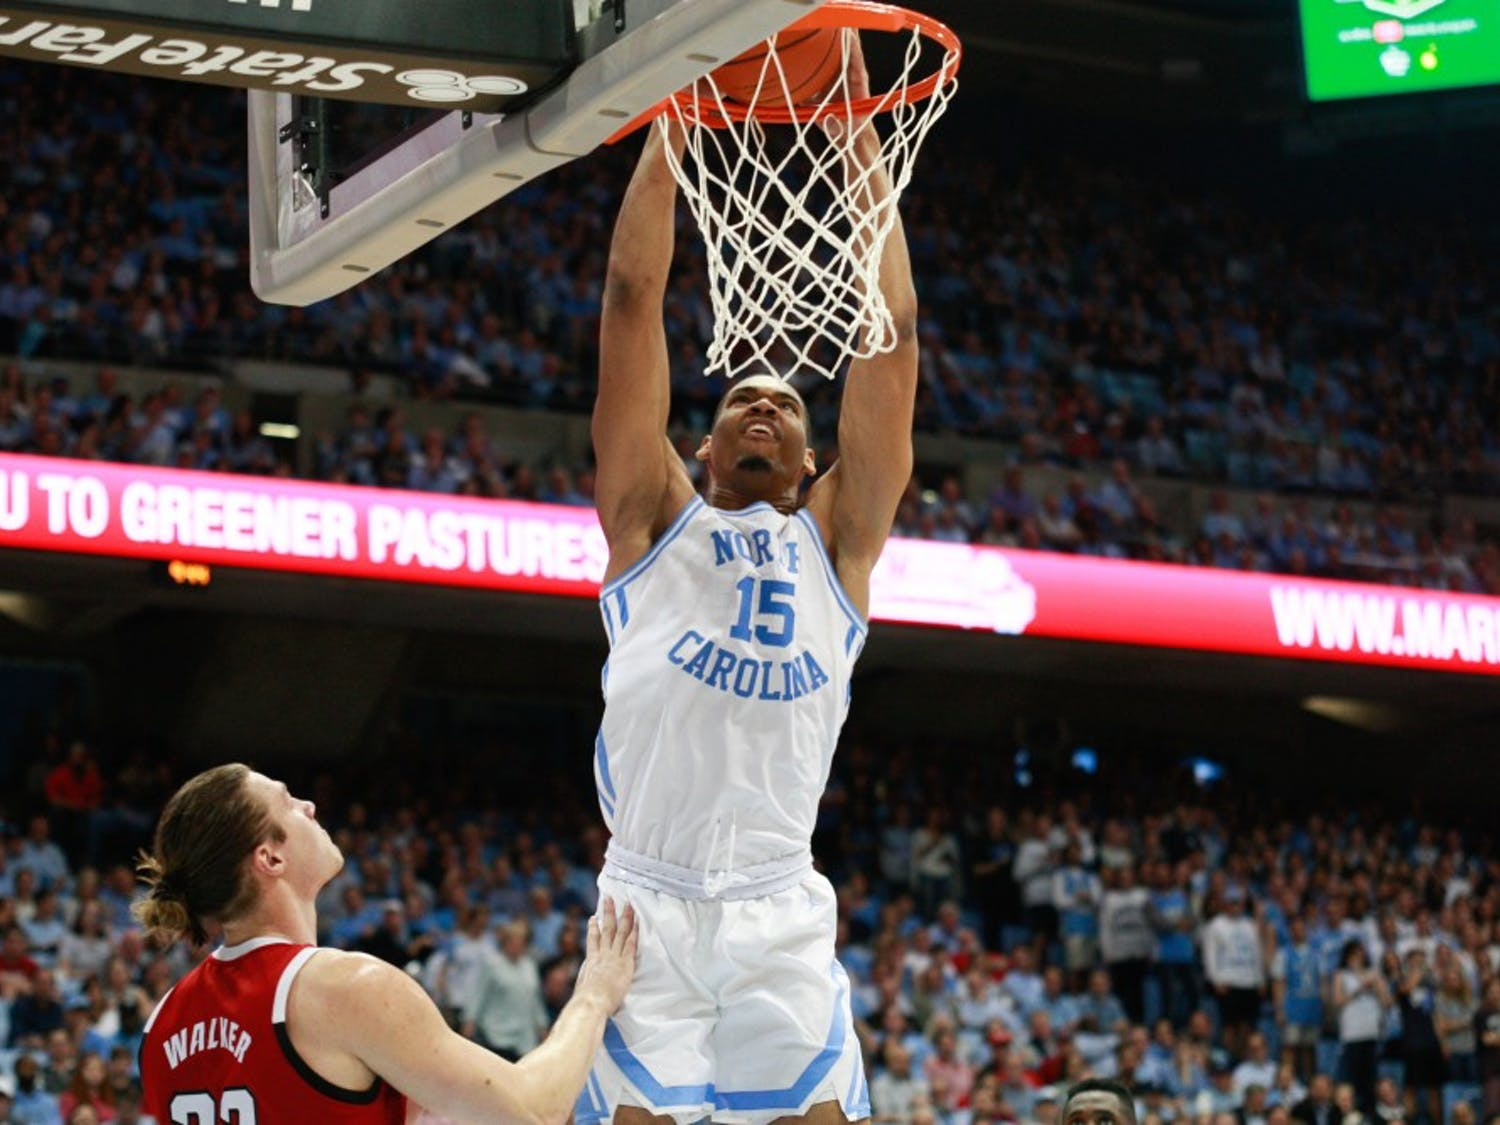 UNC men's basketball beat NC state with the most points scored on the Wolfpack since 2003. UNC won 113-96 at the Smith Center on Tuesday, Feb. 5, 2019.